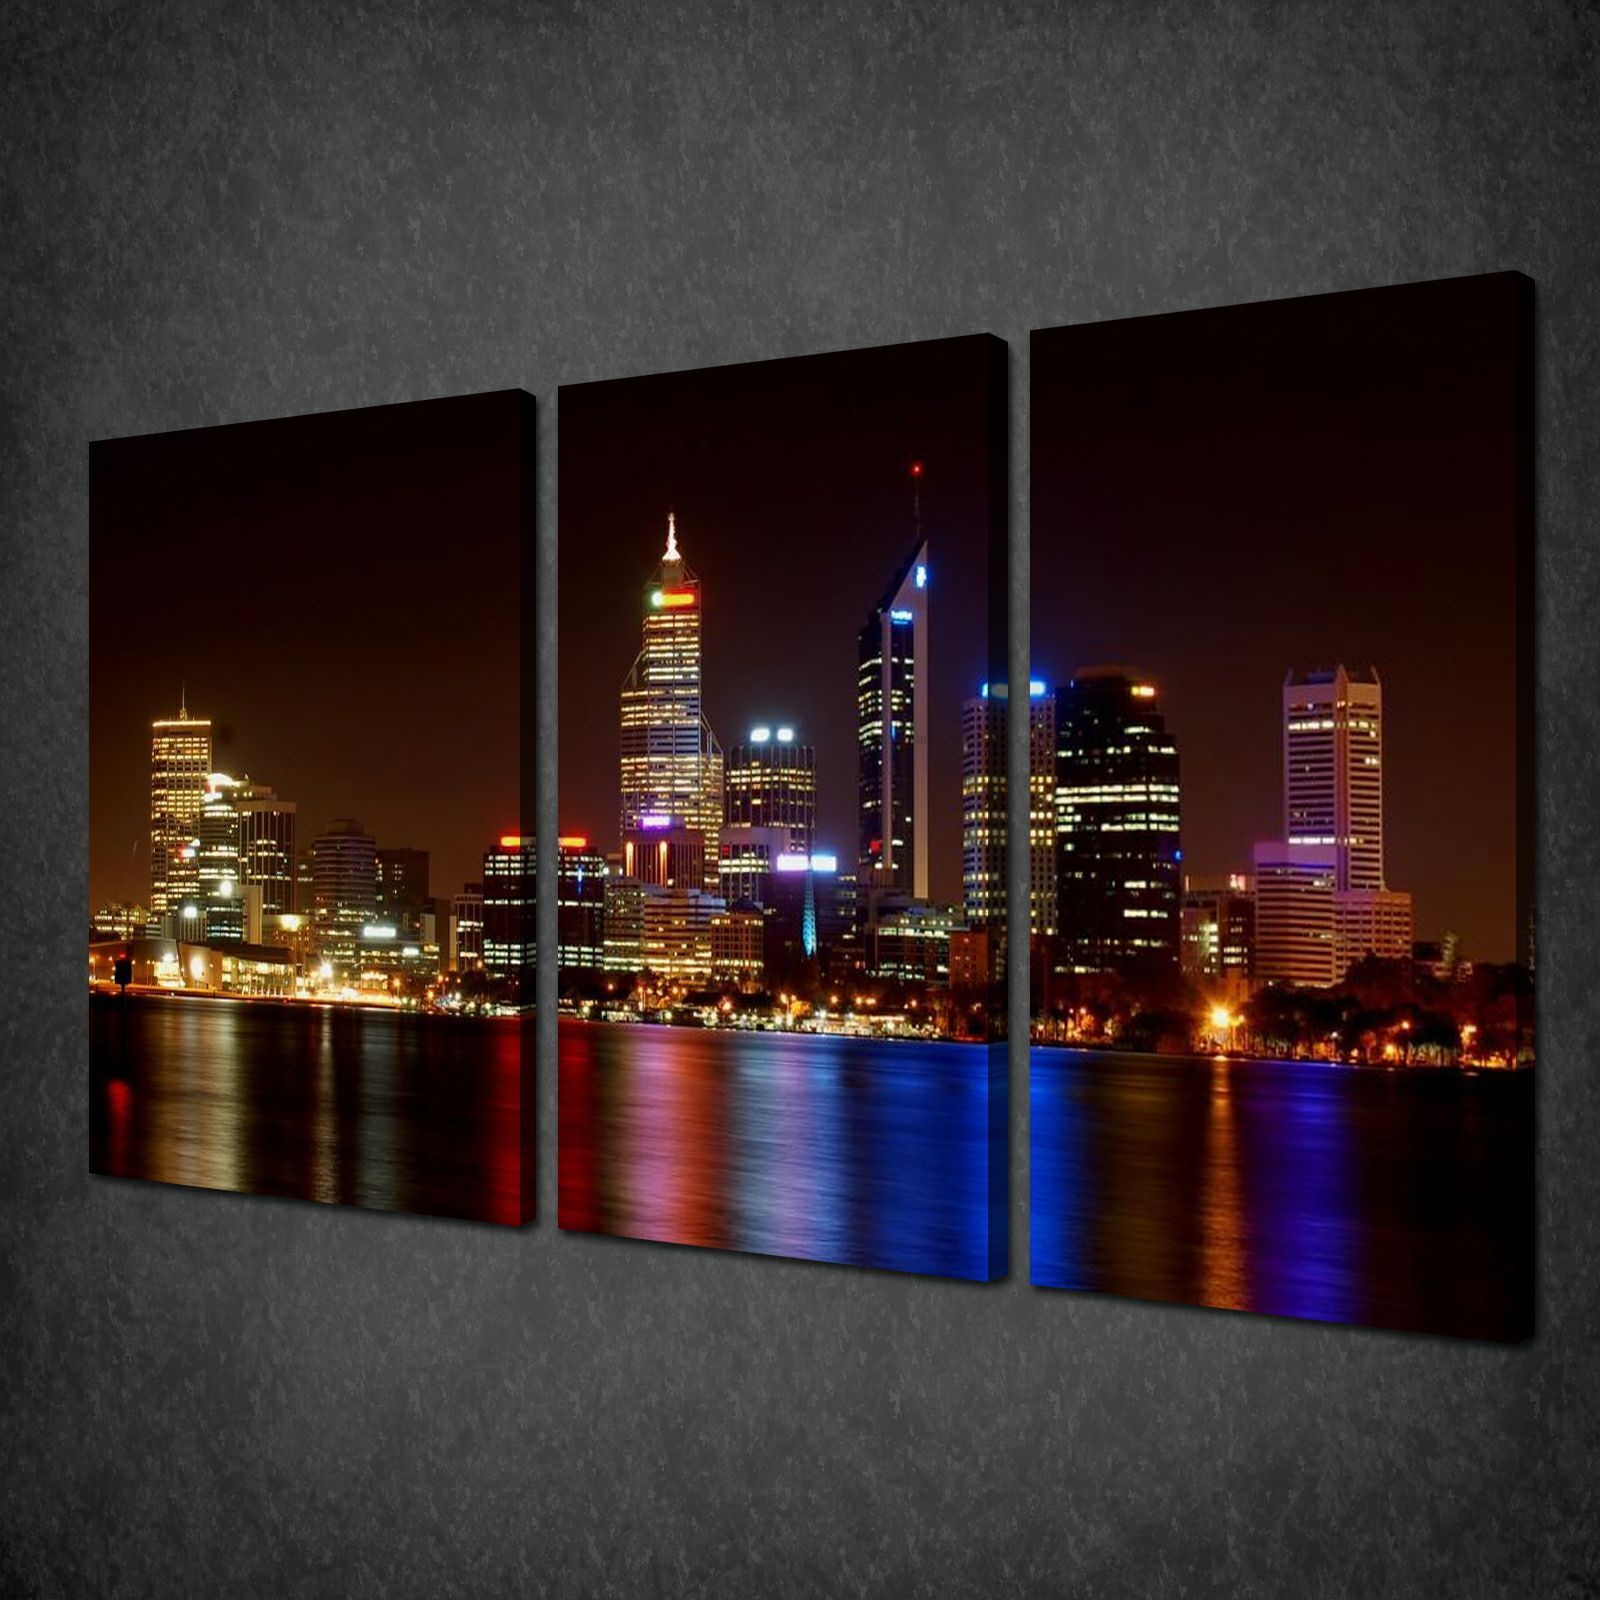 Canvas Printing Perth Canvas Print Pictures High Quality Handmade Free Next